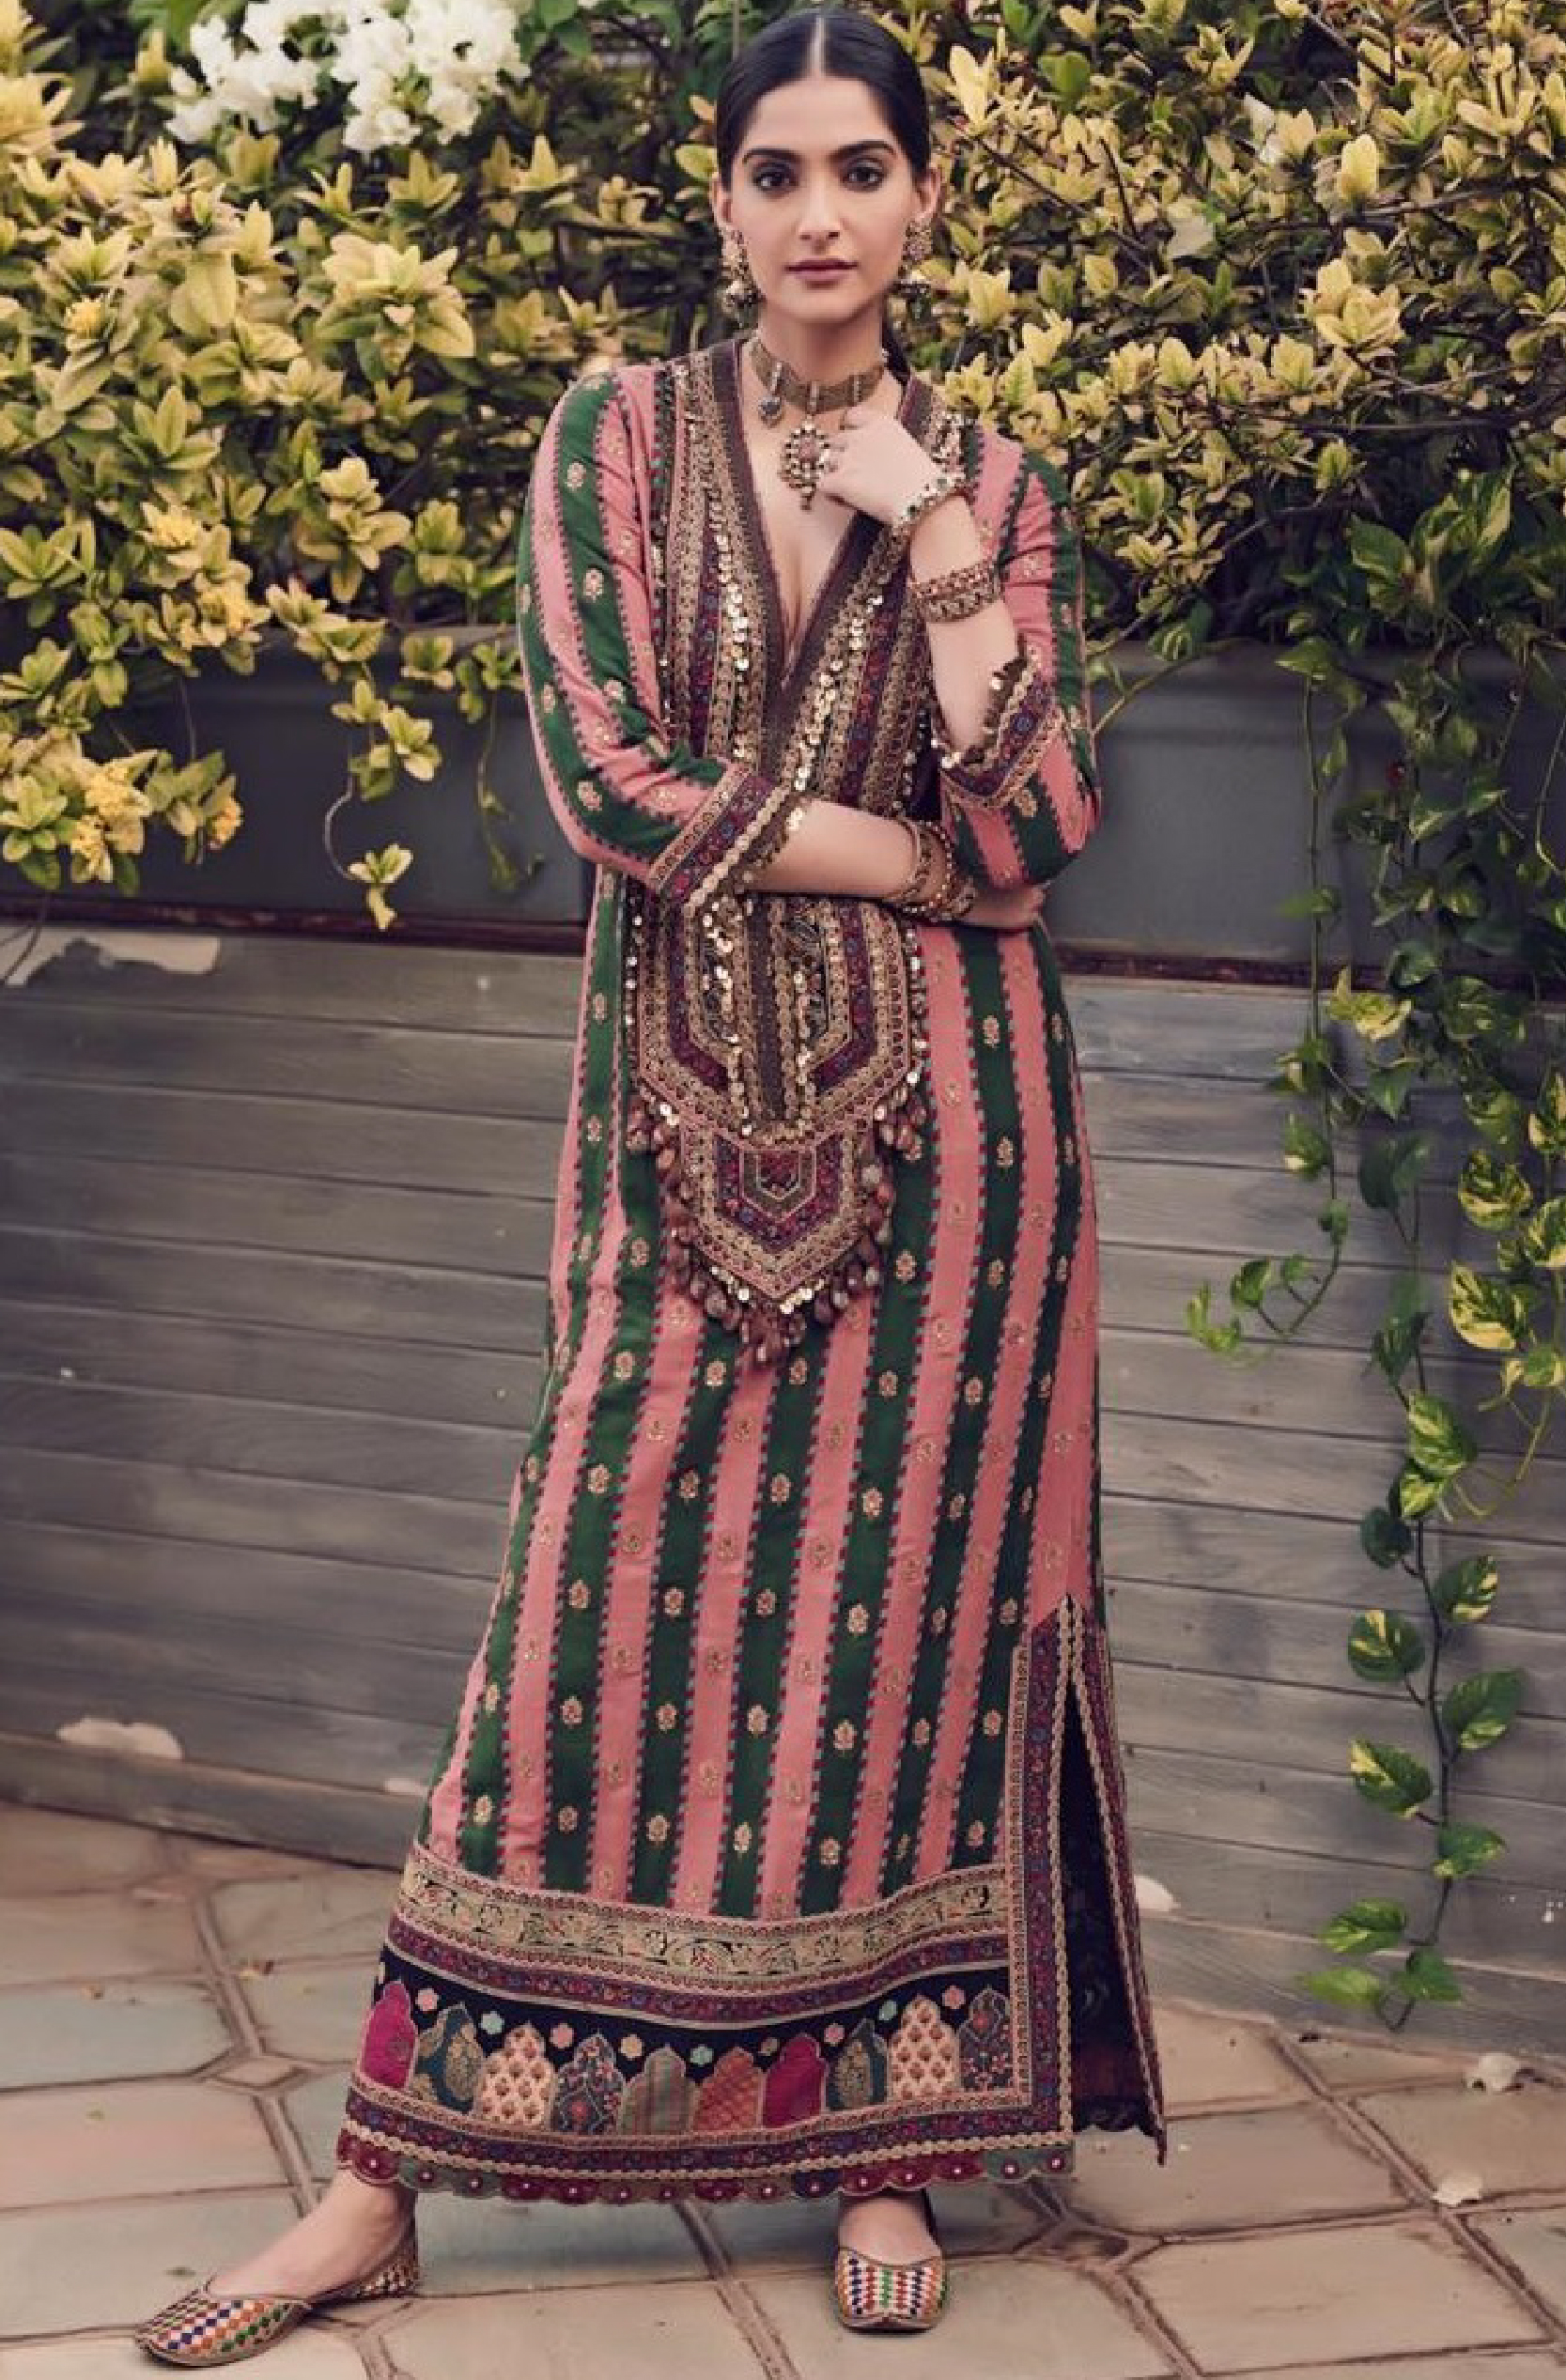 Outfit By Sabyasachi